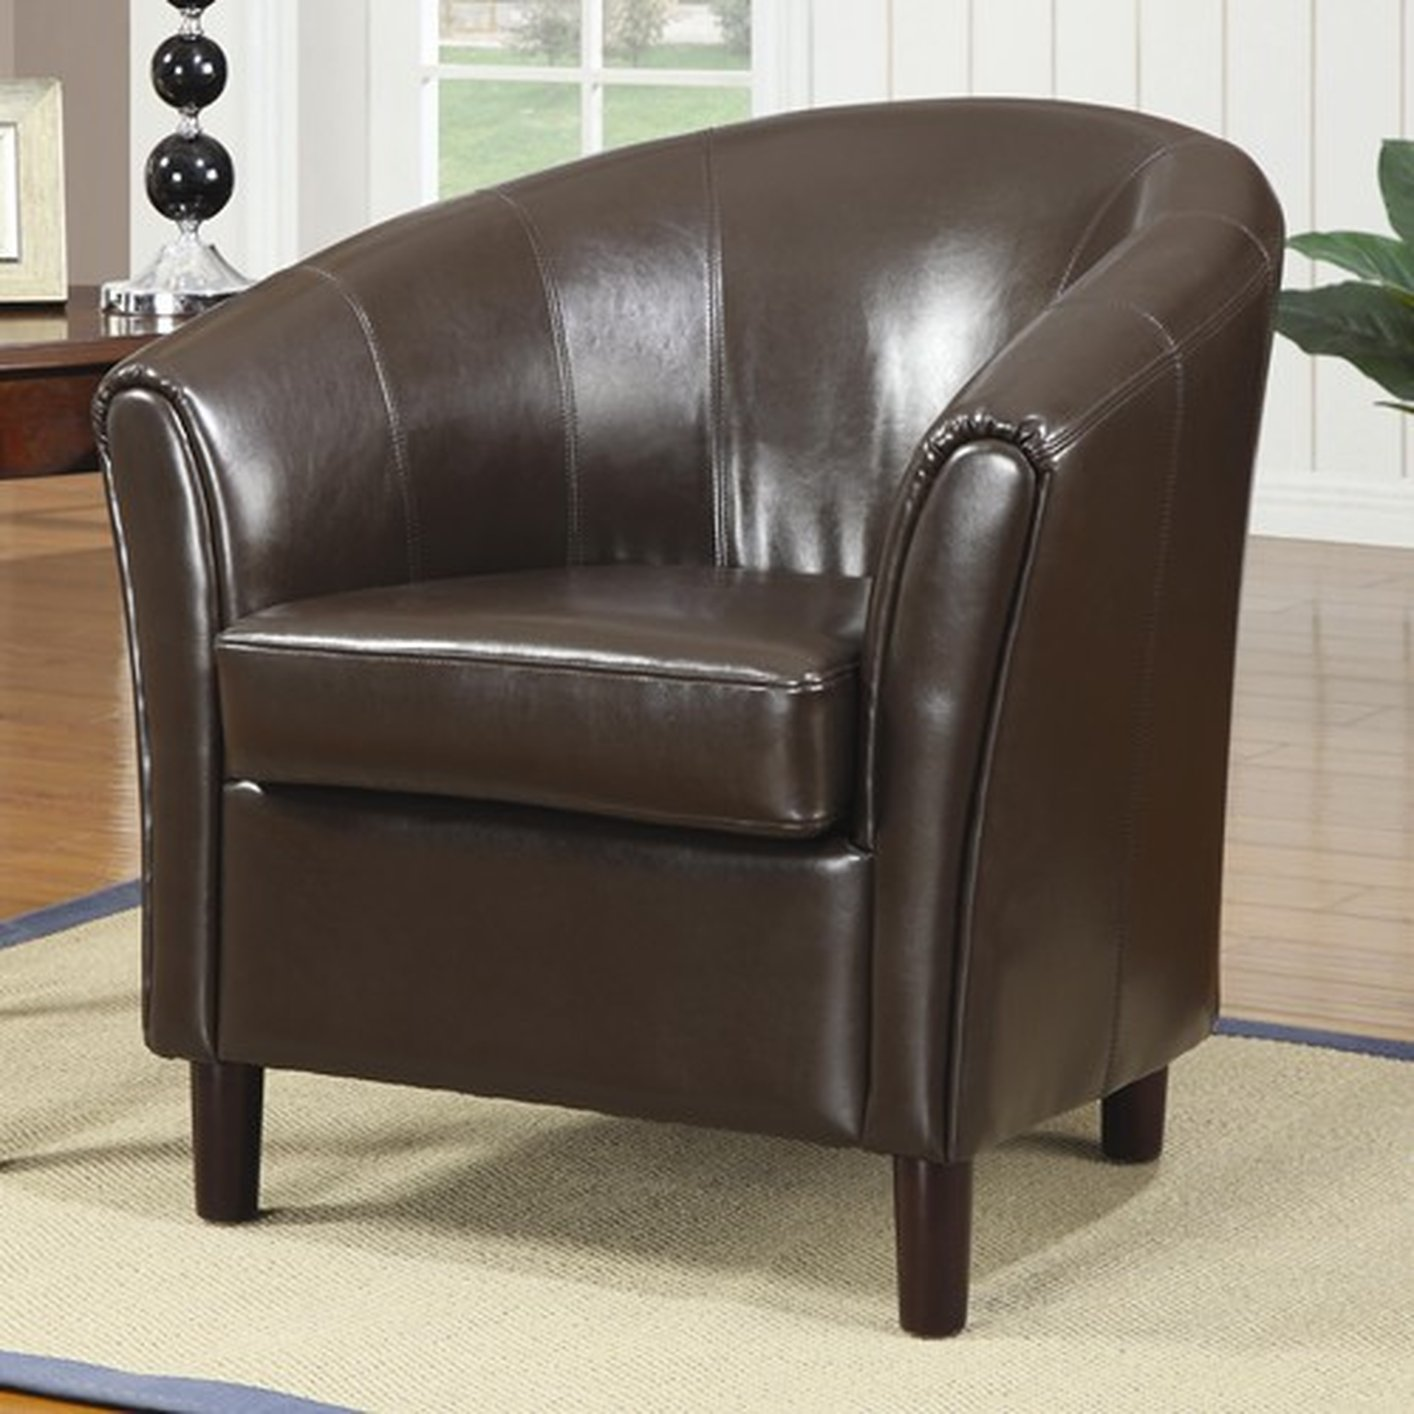 Superbe Brown Leather Accent Chair